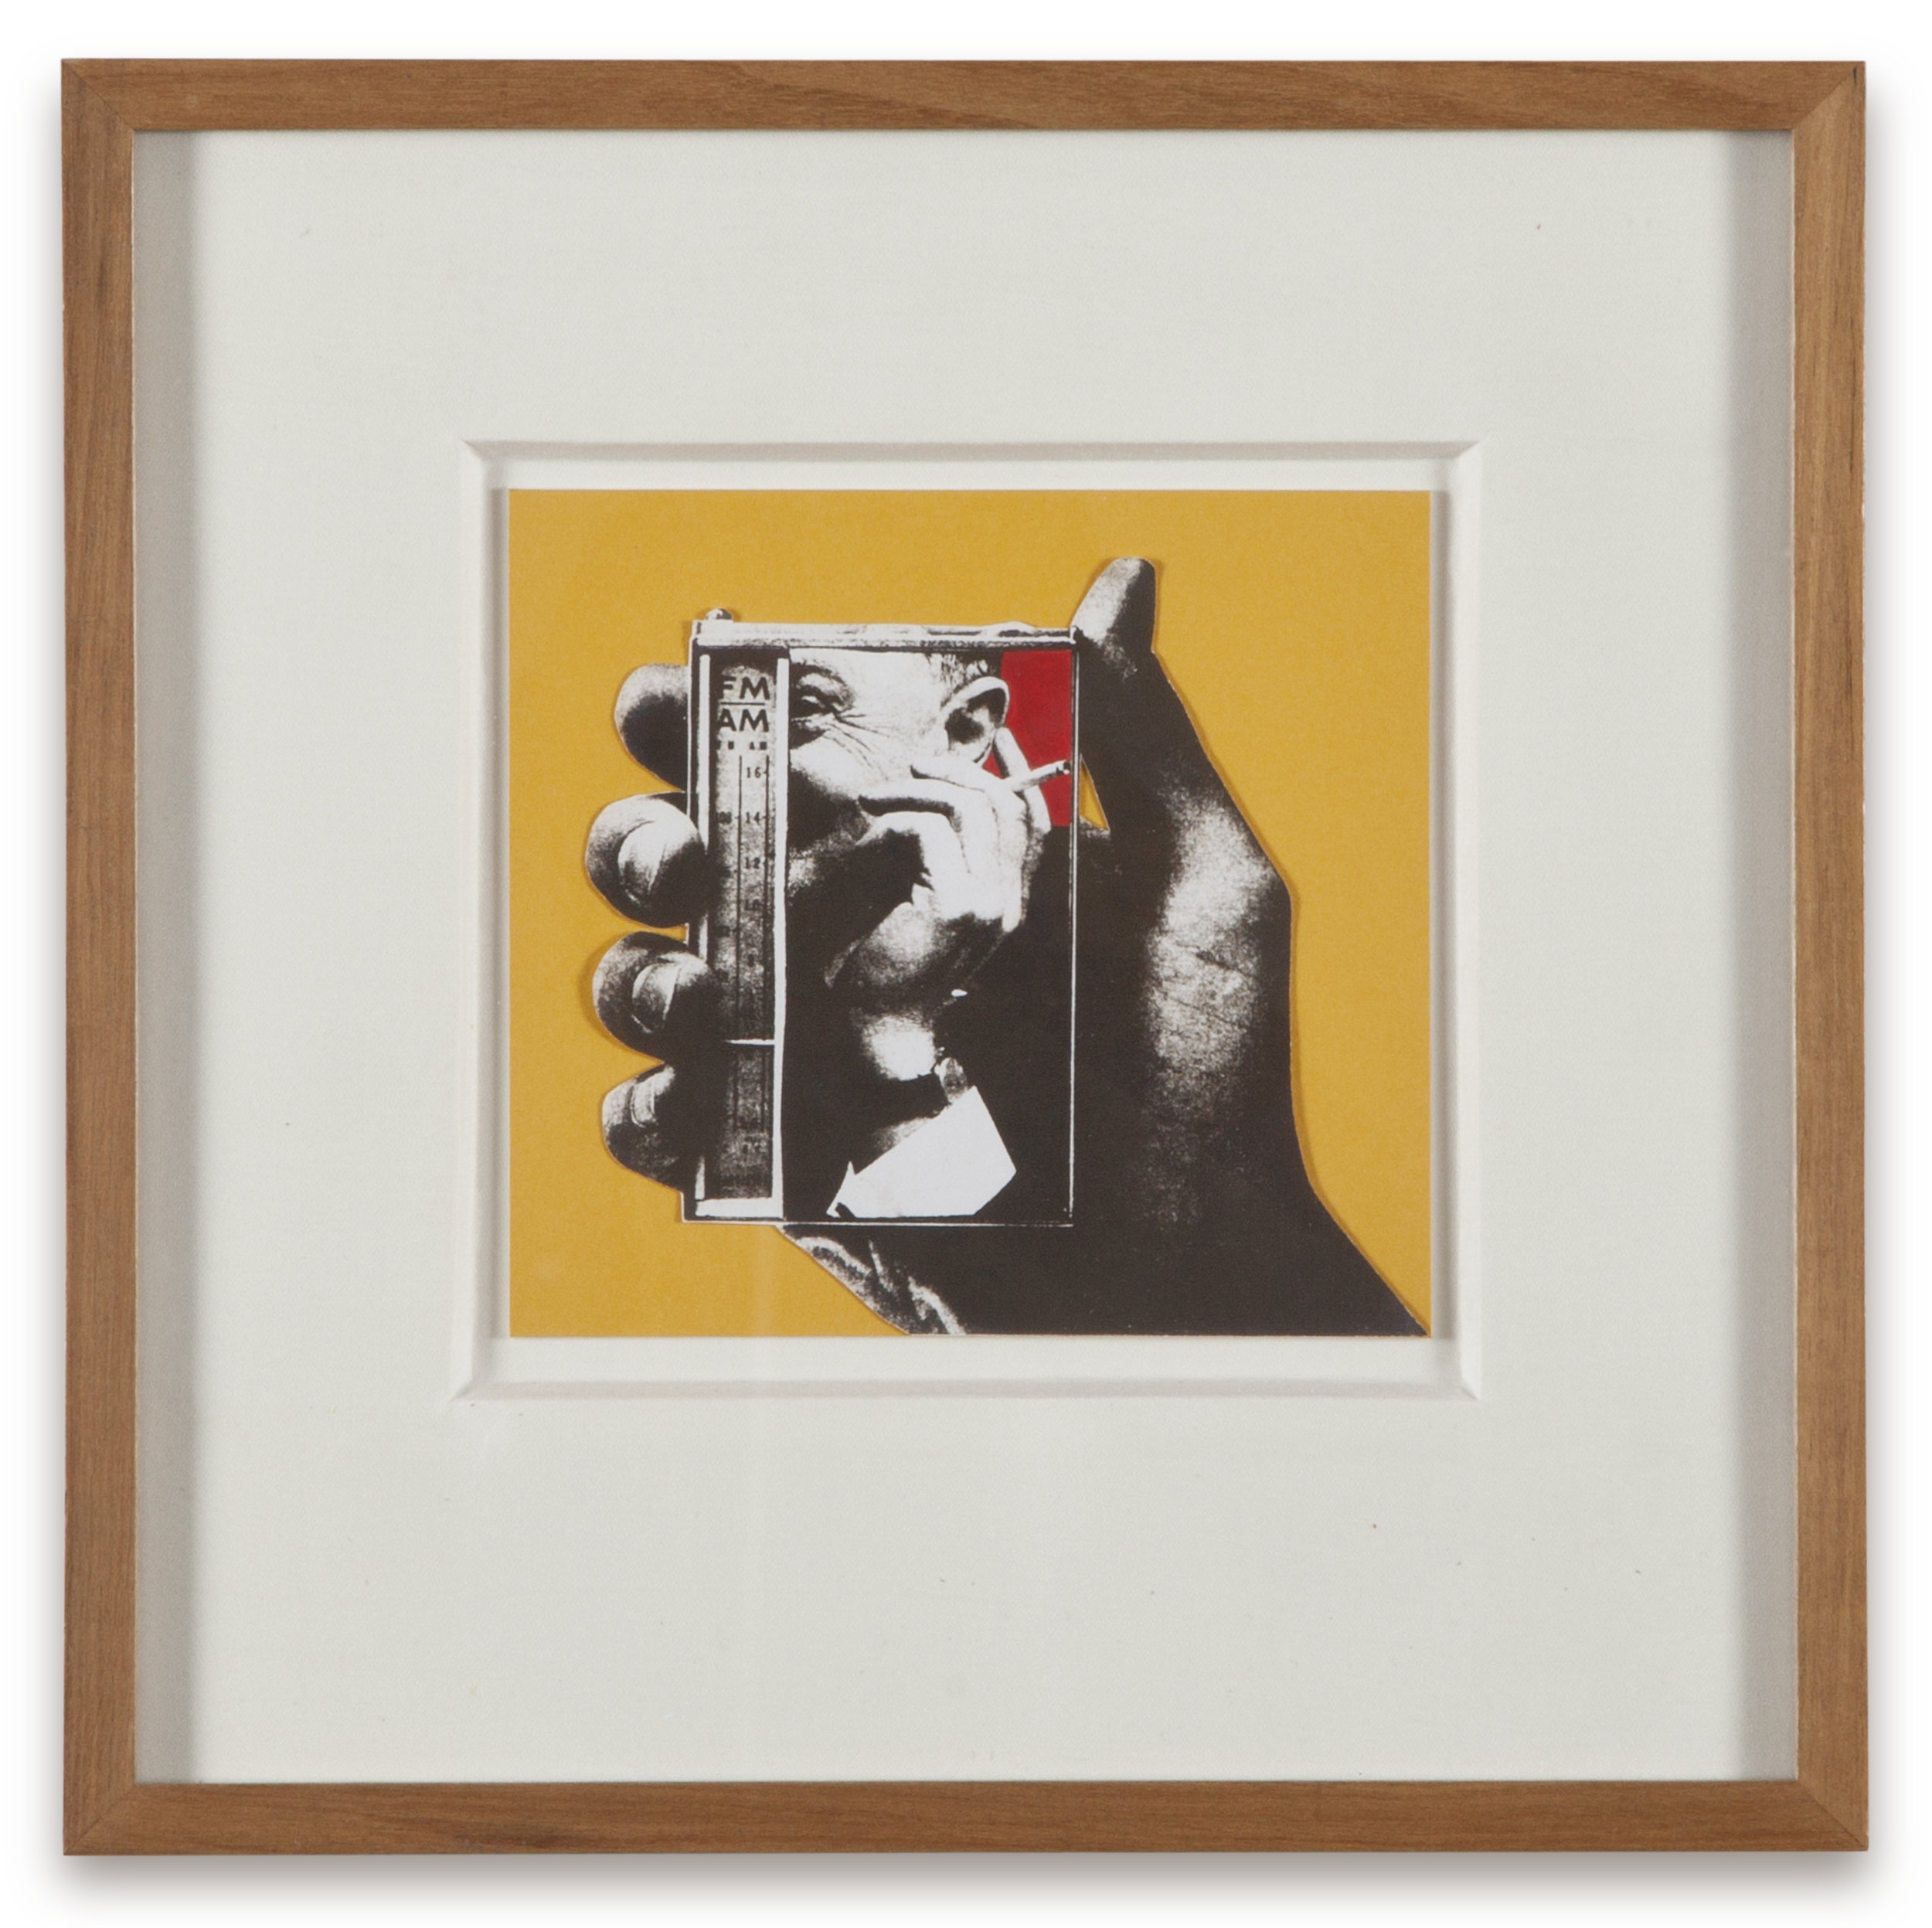 "Copy of ""Untitled #124"" , c. 1964-76, Verifax collage with acrylic, 6 x 6 1/2 inches, framed 12 x 12 1/2 inches"